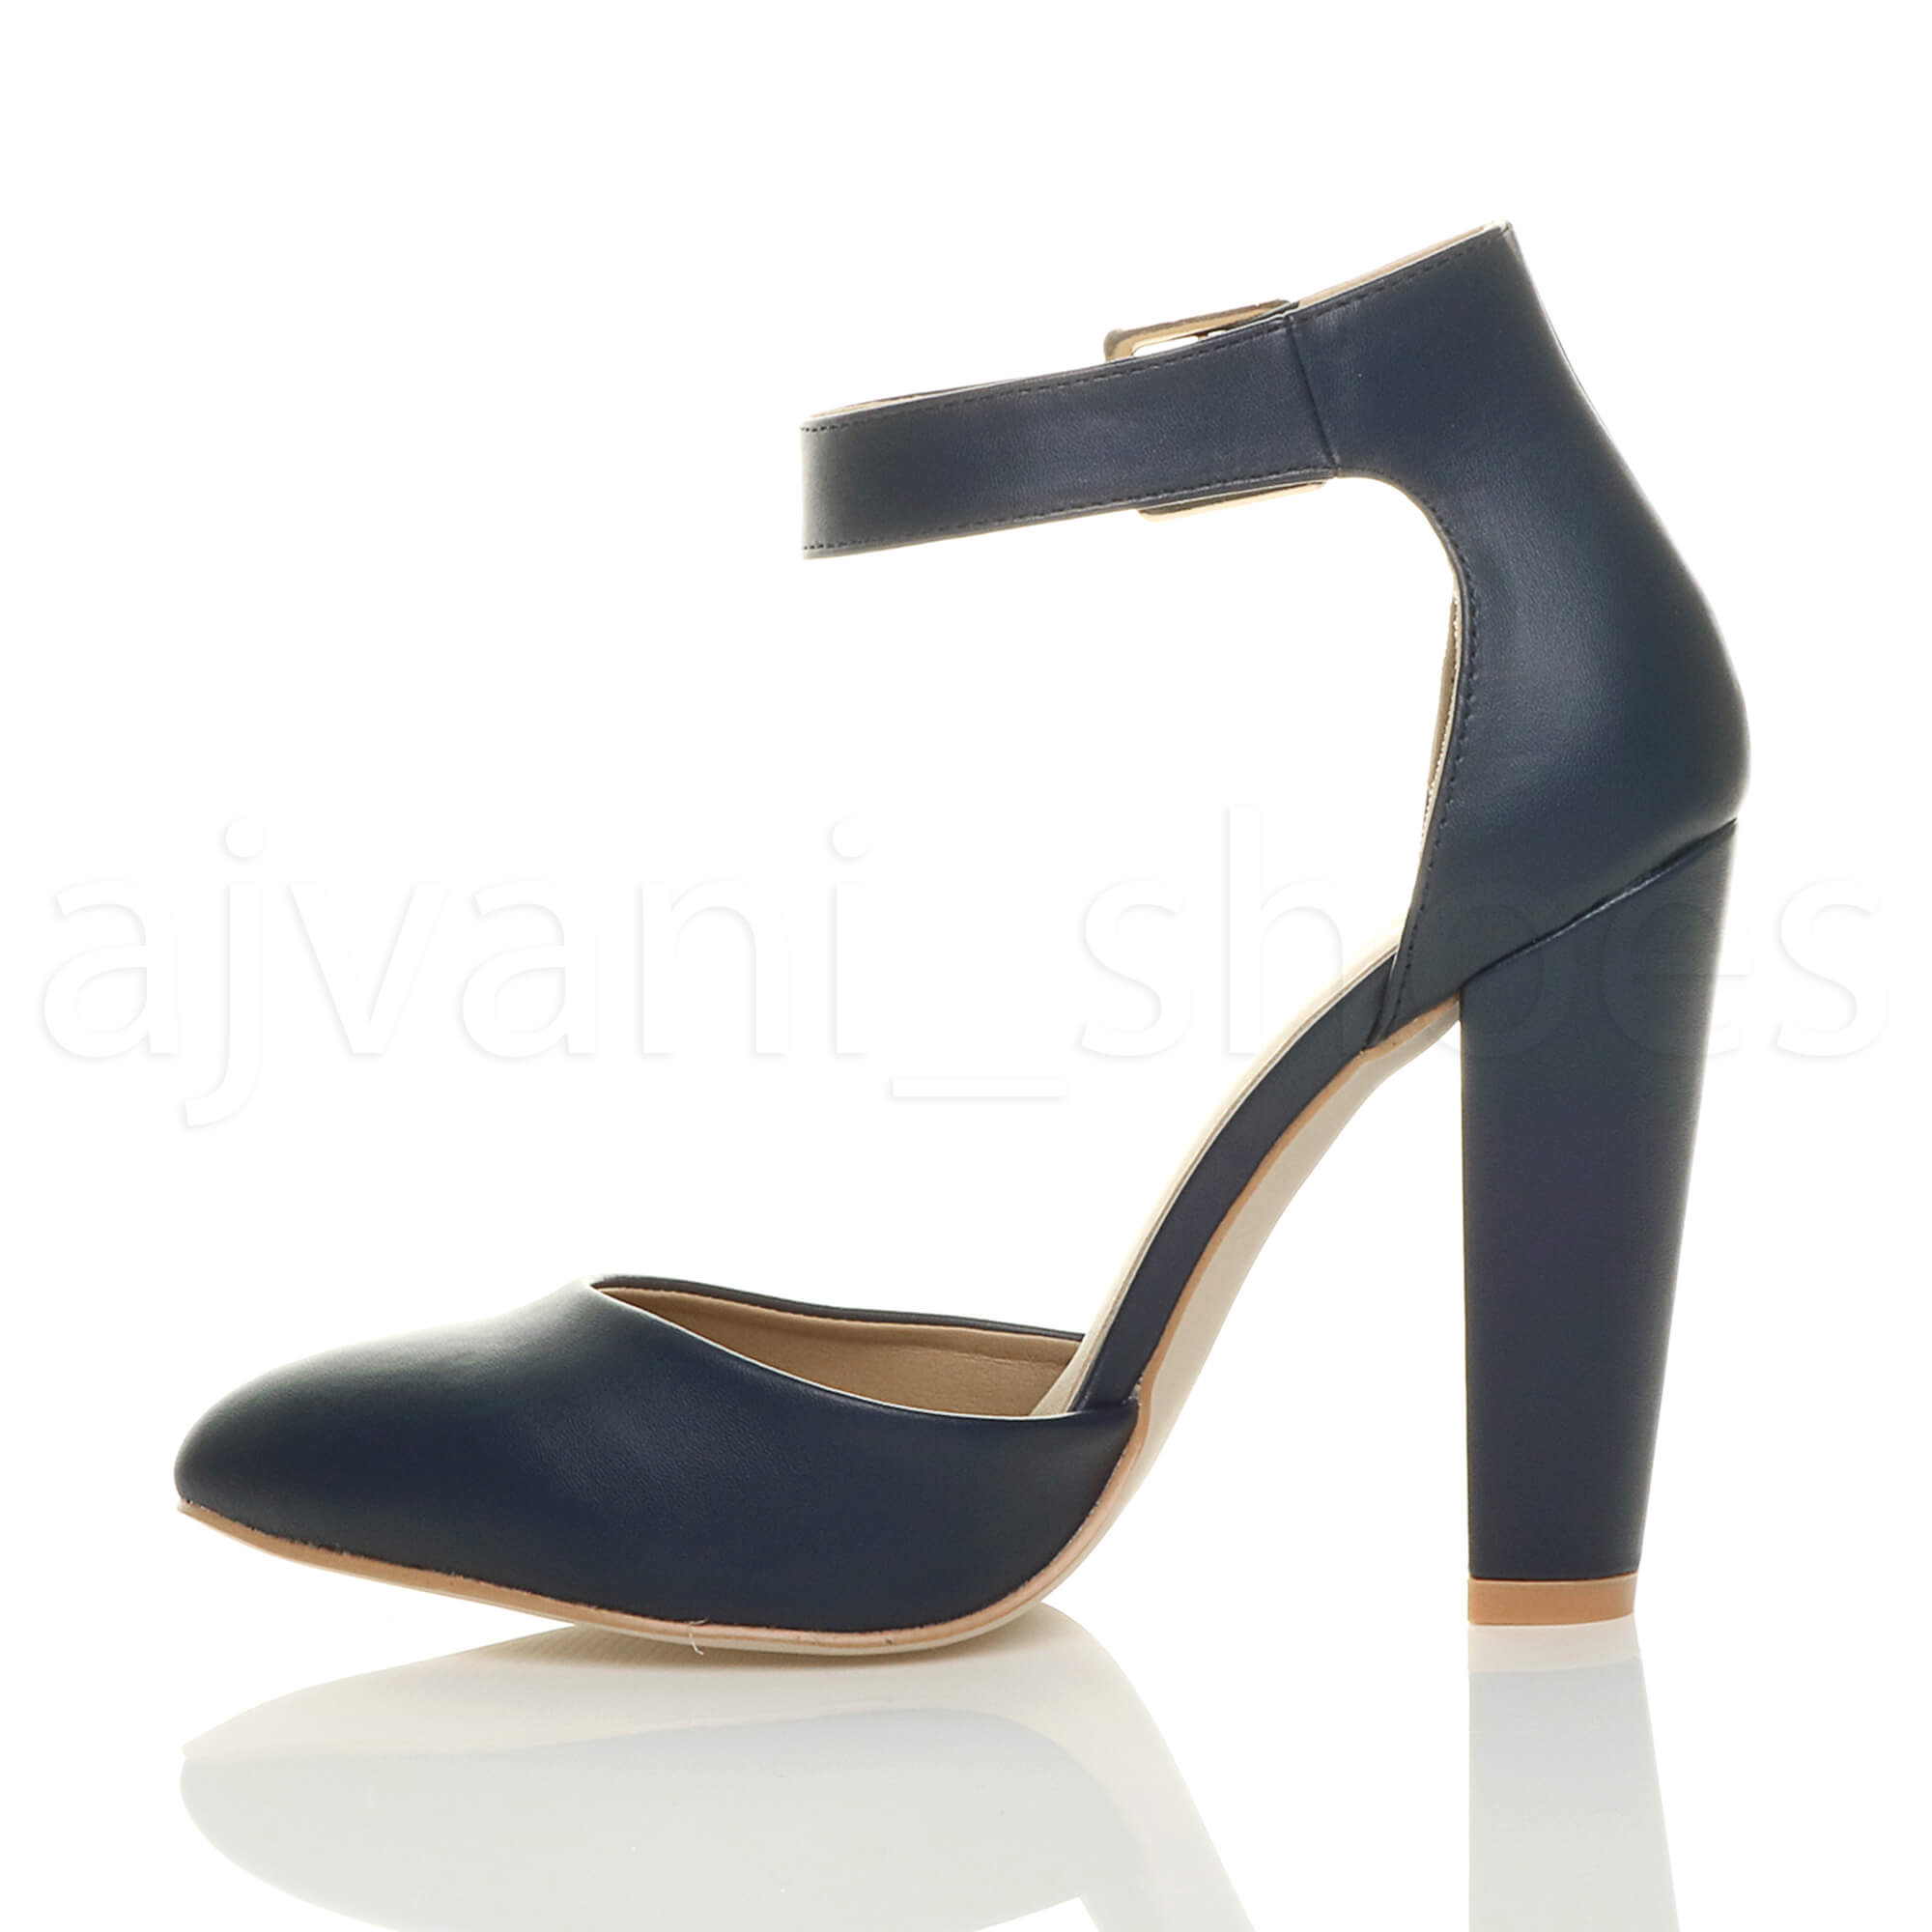 WOMENS-LADIES-HIGH-BLOCK-HEEL-ANKLE-STRAP-BUCKLE-POINTED-COURT-SHOES-SIZE thumbnail 67